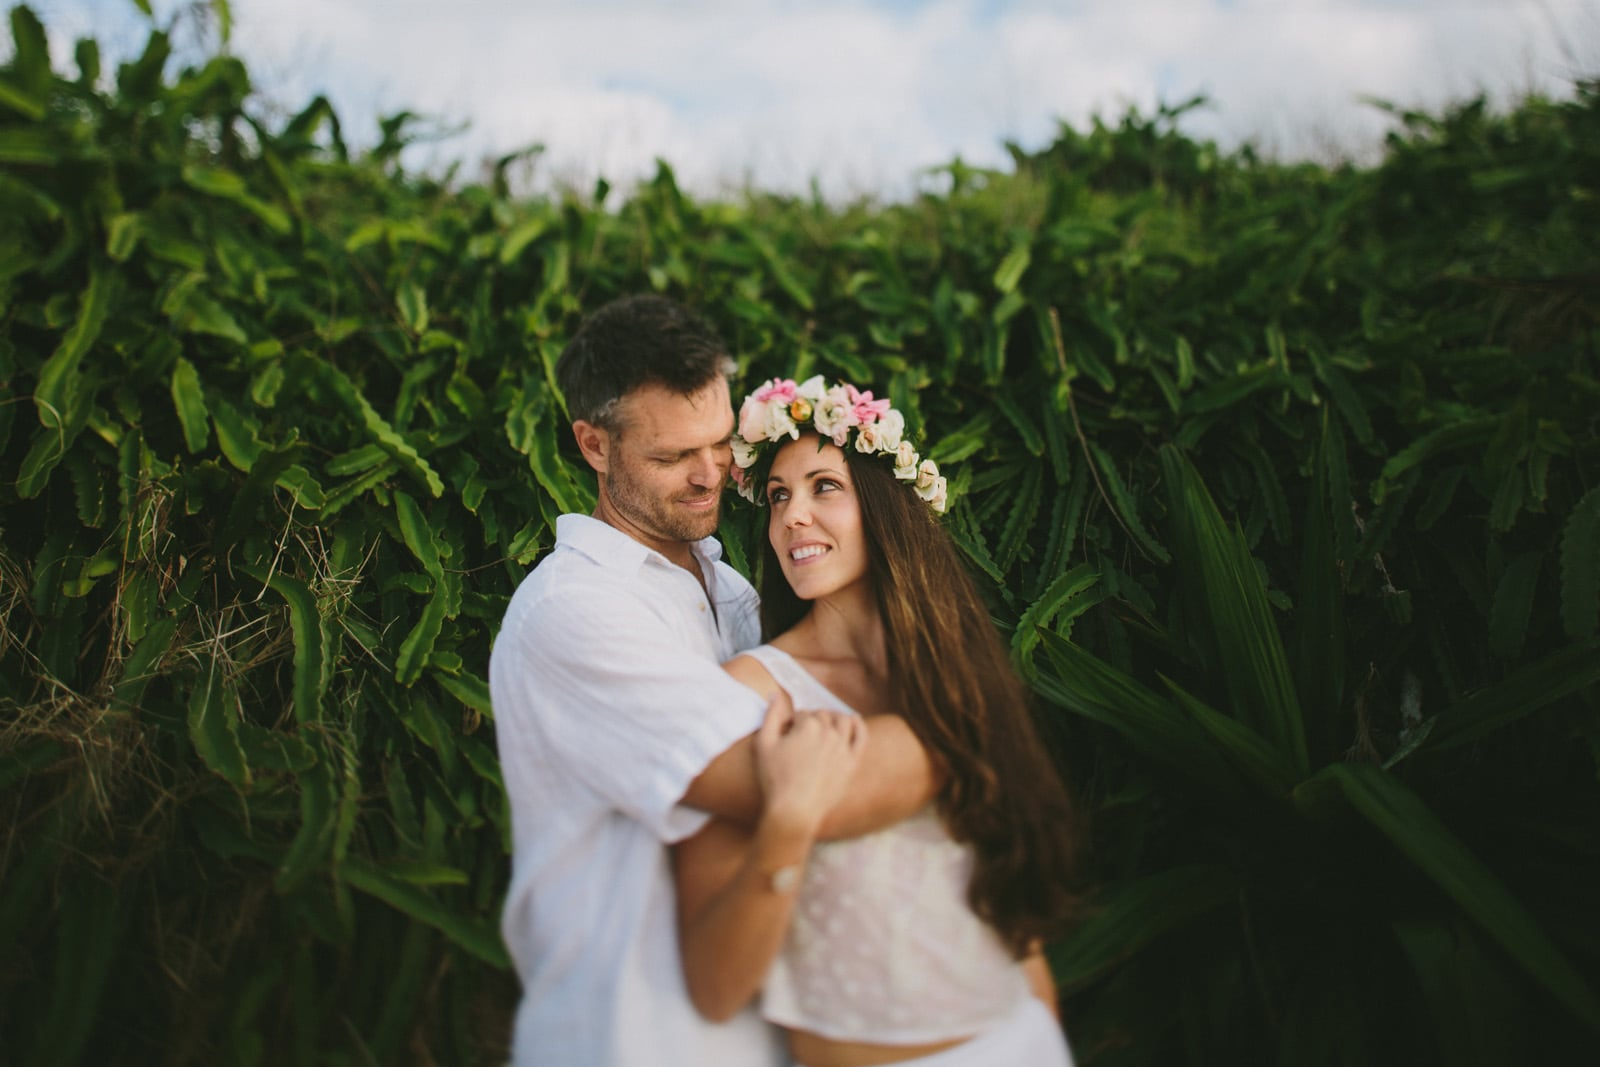 Maui_Wedding_Wailea_Kapalua_Hawaii_Photographer_009